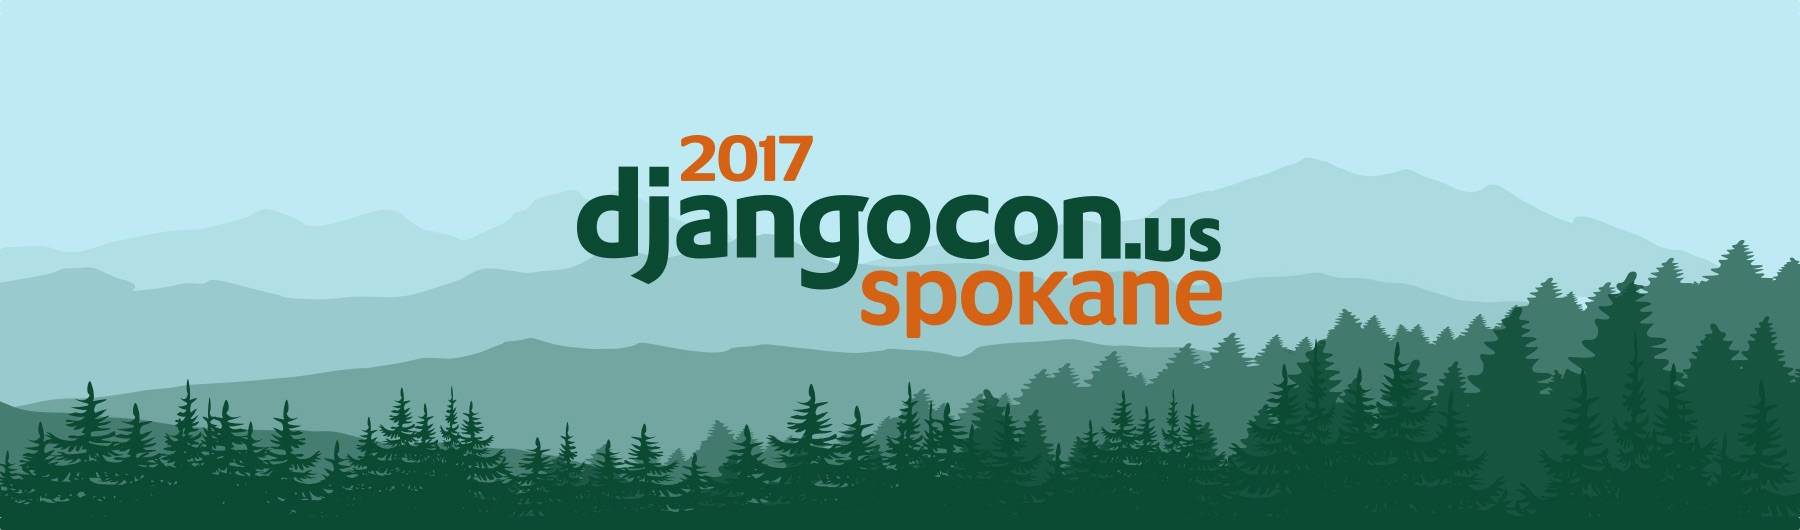 DjangoCon US 2017